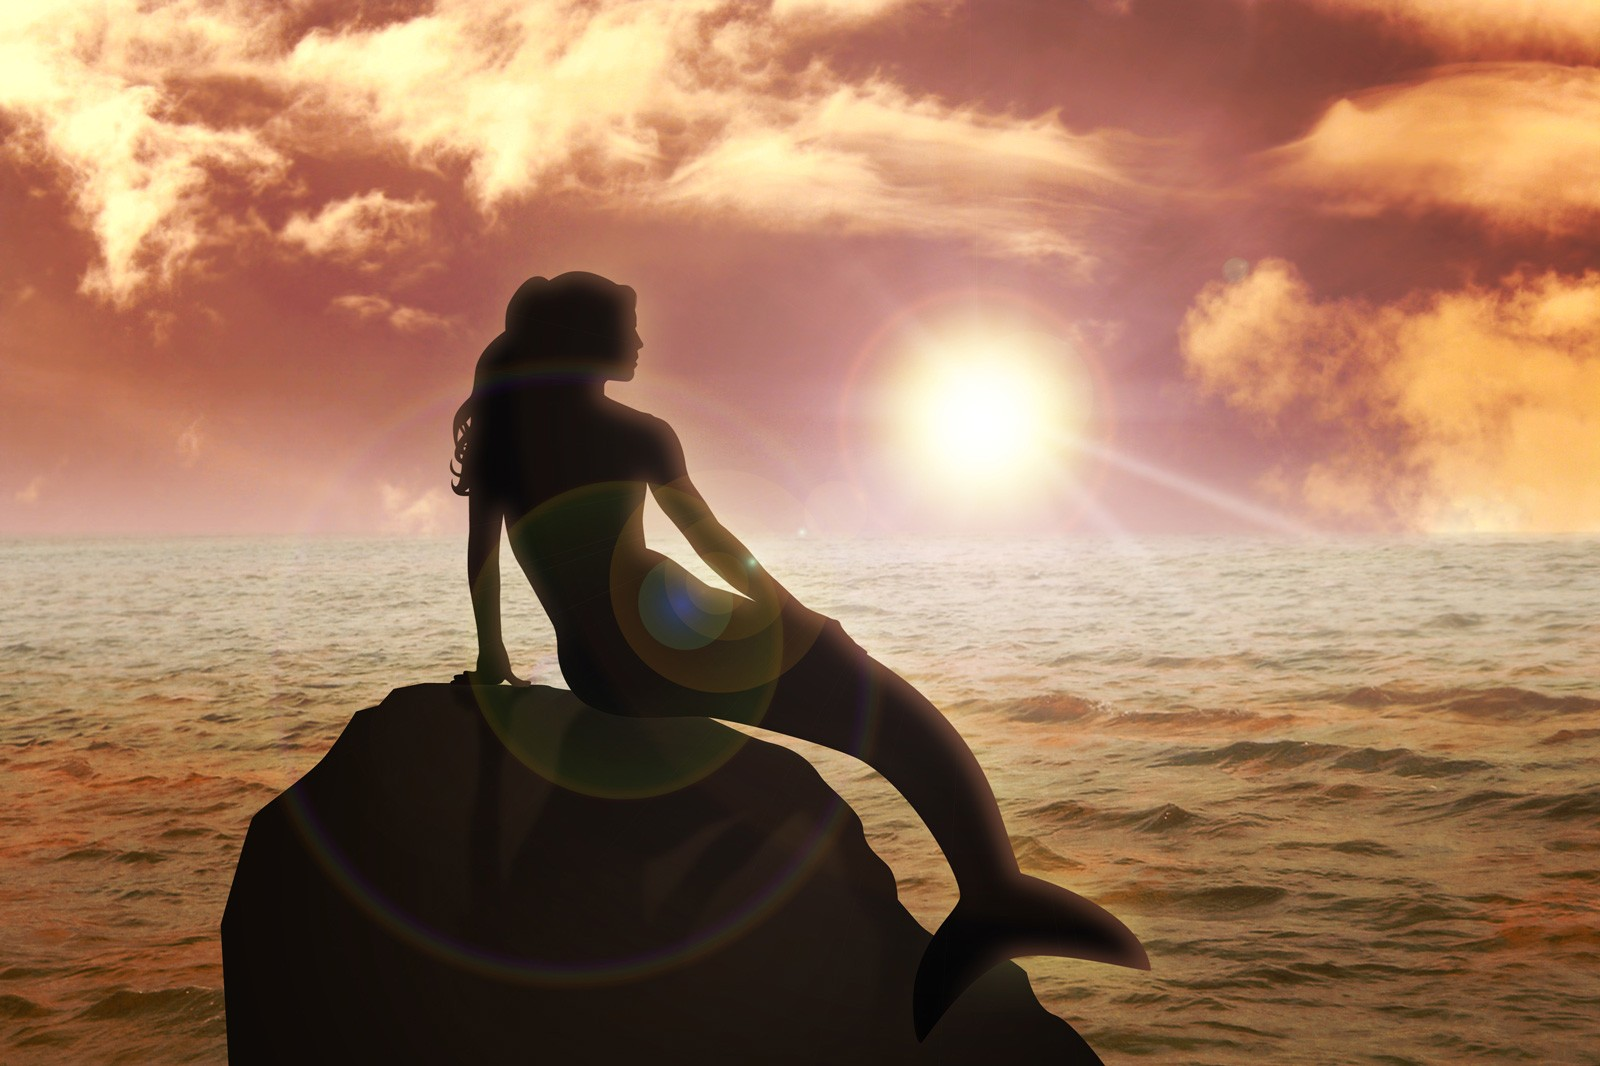 Mermaid Meaning and Symbolism